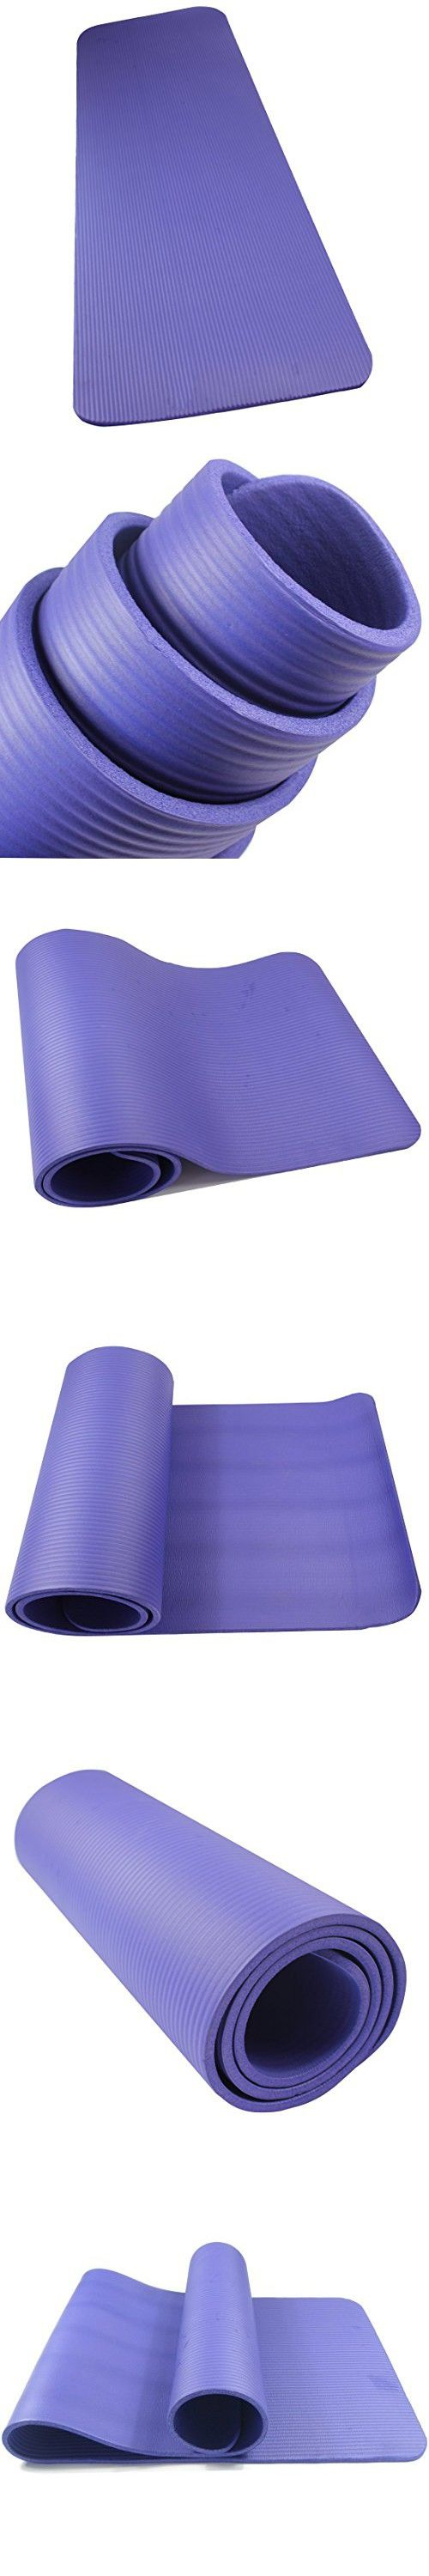 Amyup 1/2-inch Extra Thick 72-inch Long NBR High Density Anti-tear Non-slip Yoga Mat in Color Purple, Exercise Mat for Exercise Fitness Pilates